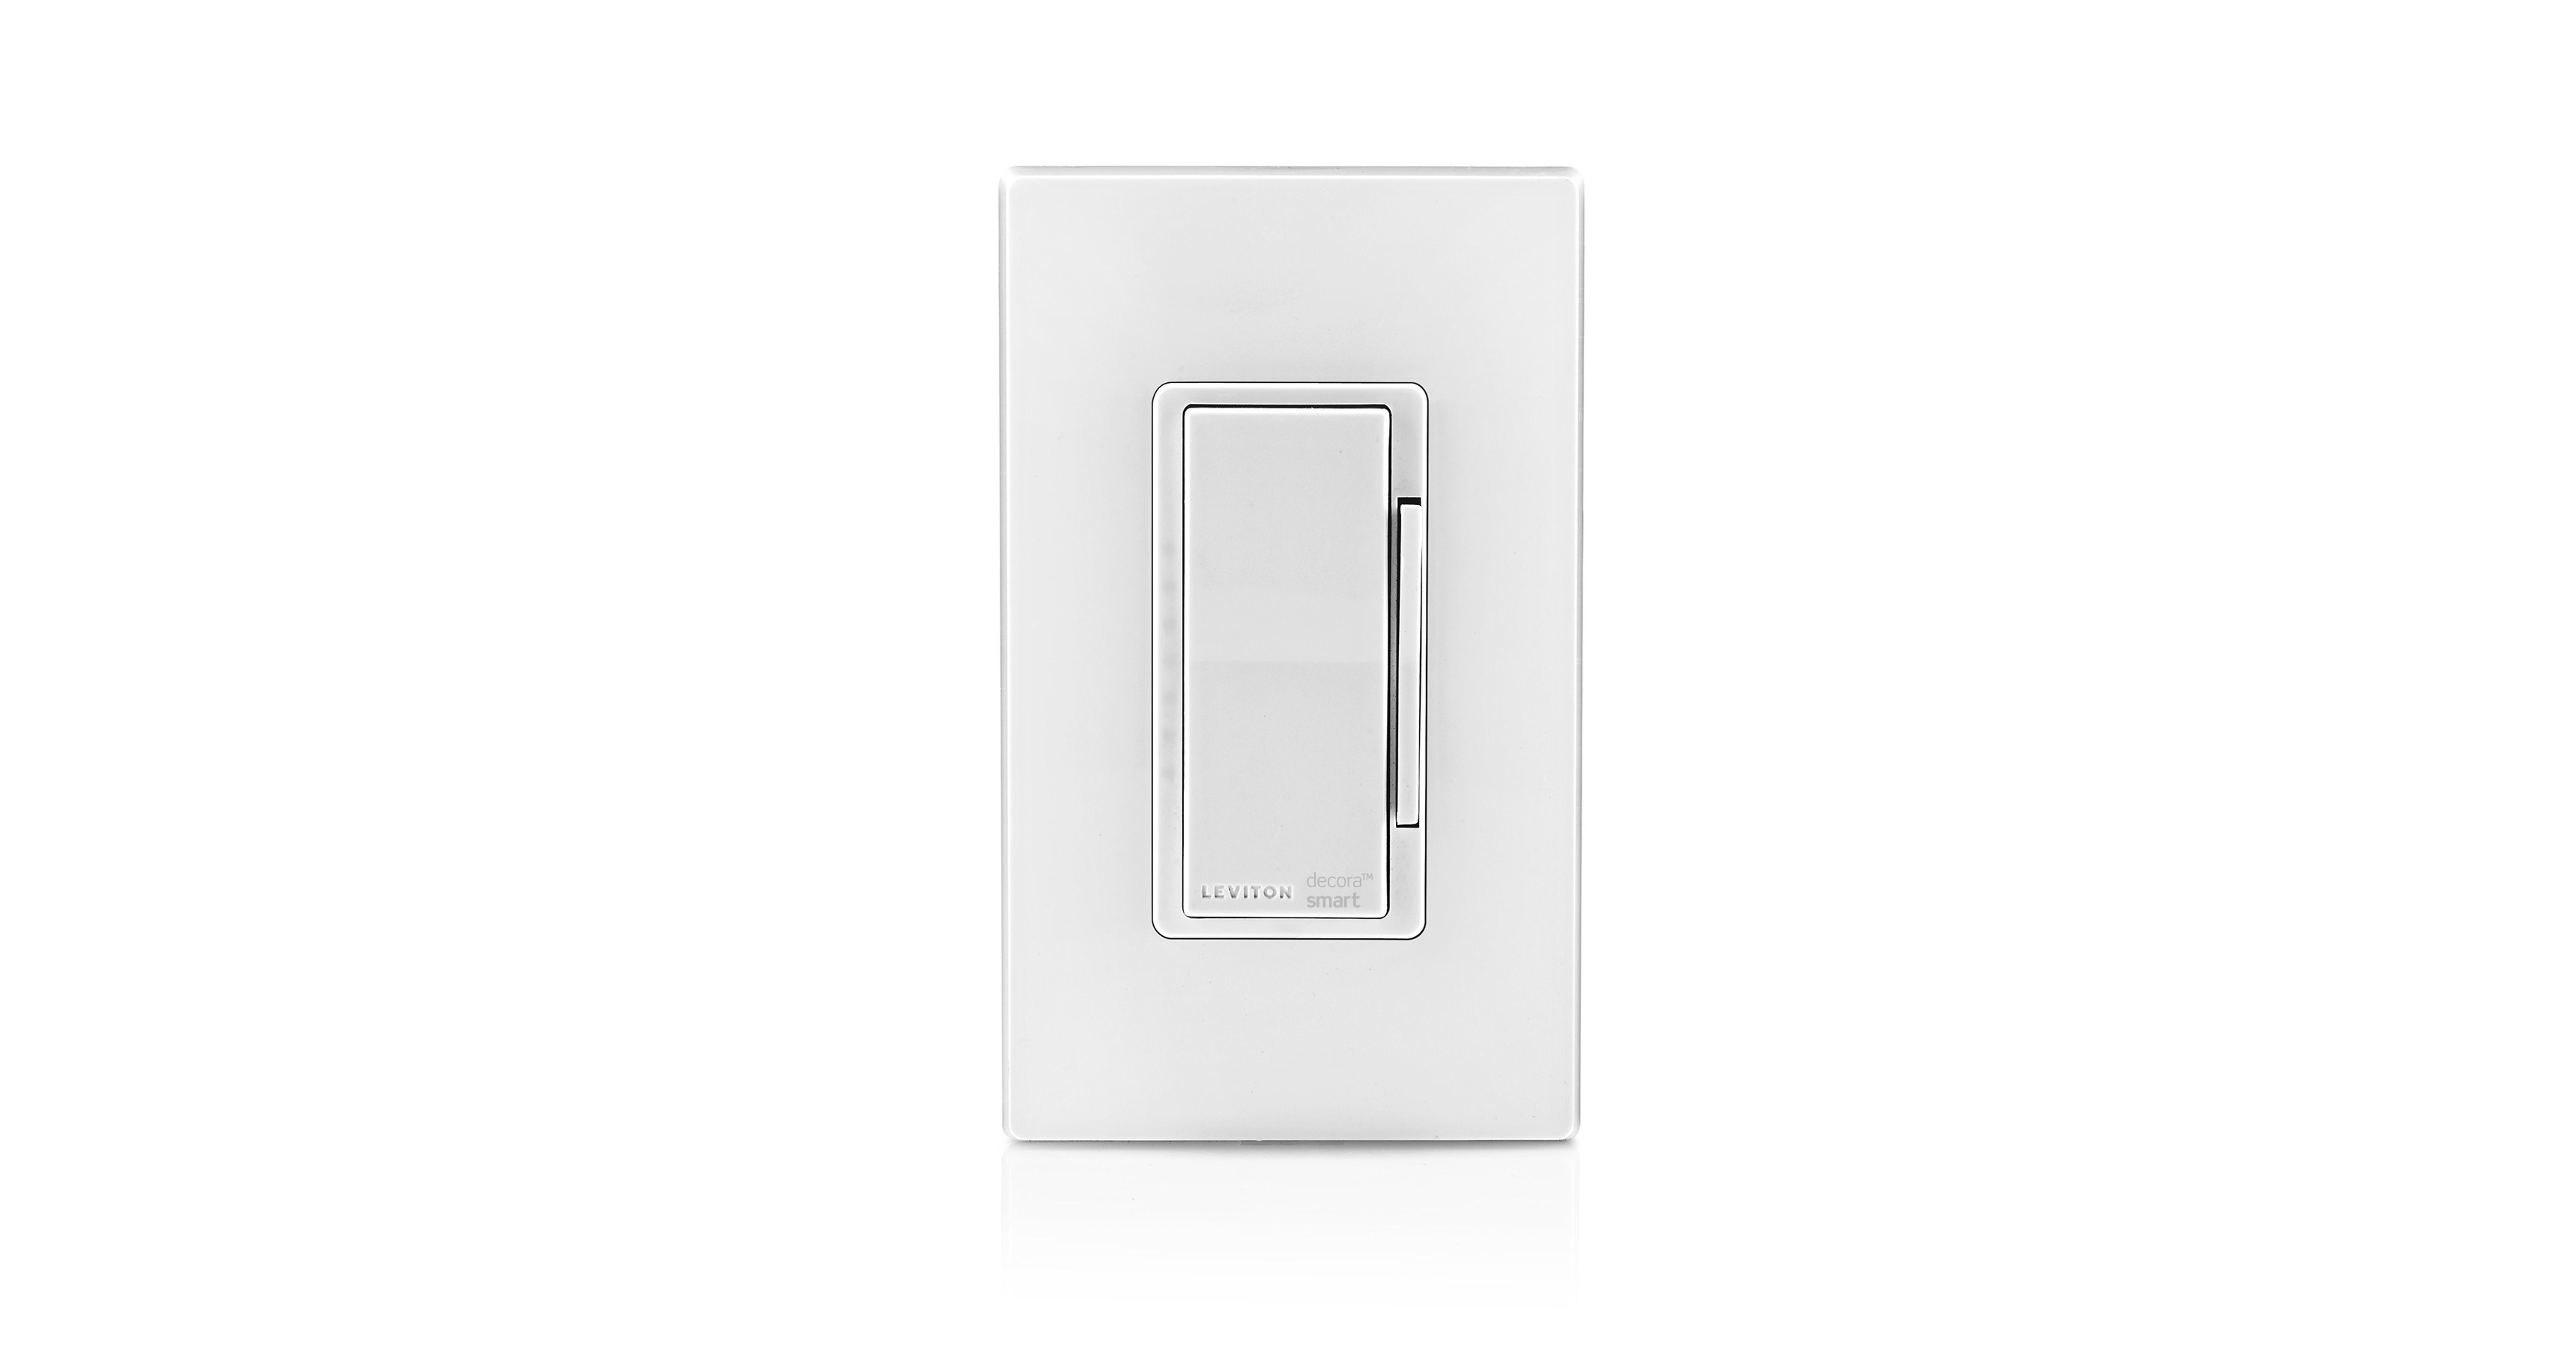 Leviton ODS10-ID Decora Wall Switch Occupancy Sensor 8-Pack 120//277V rating White with Screwless Wallplates